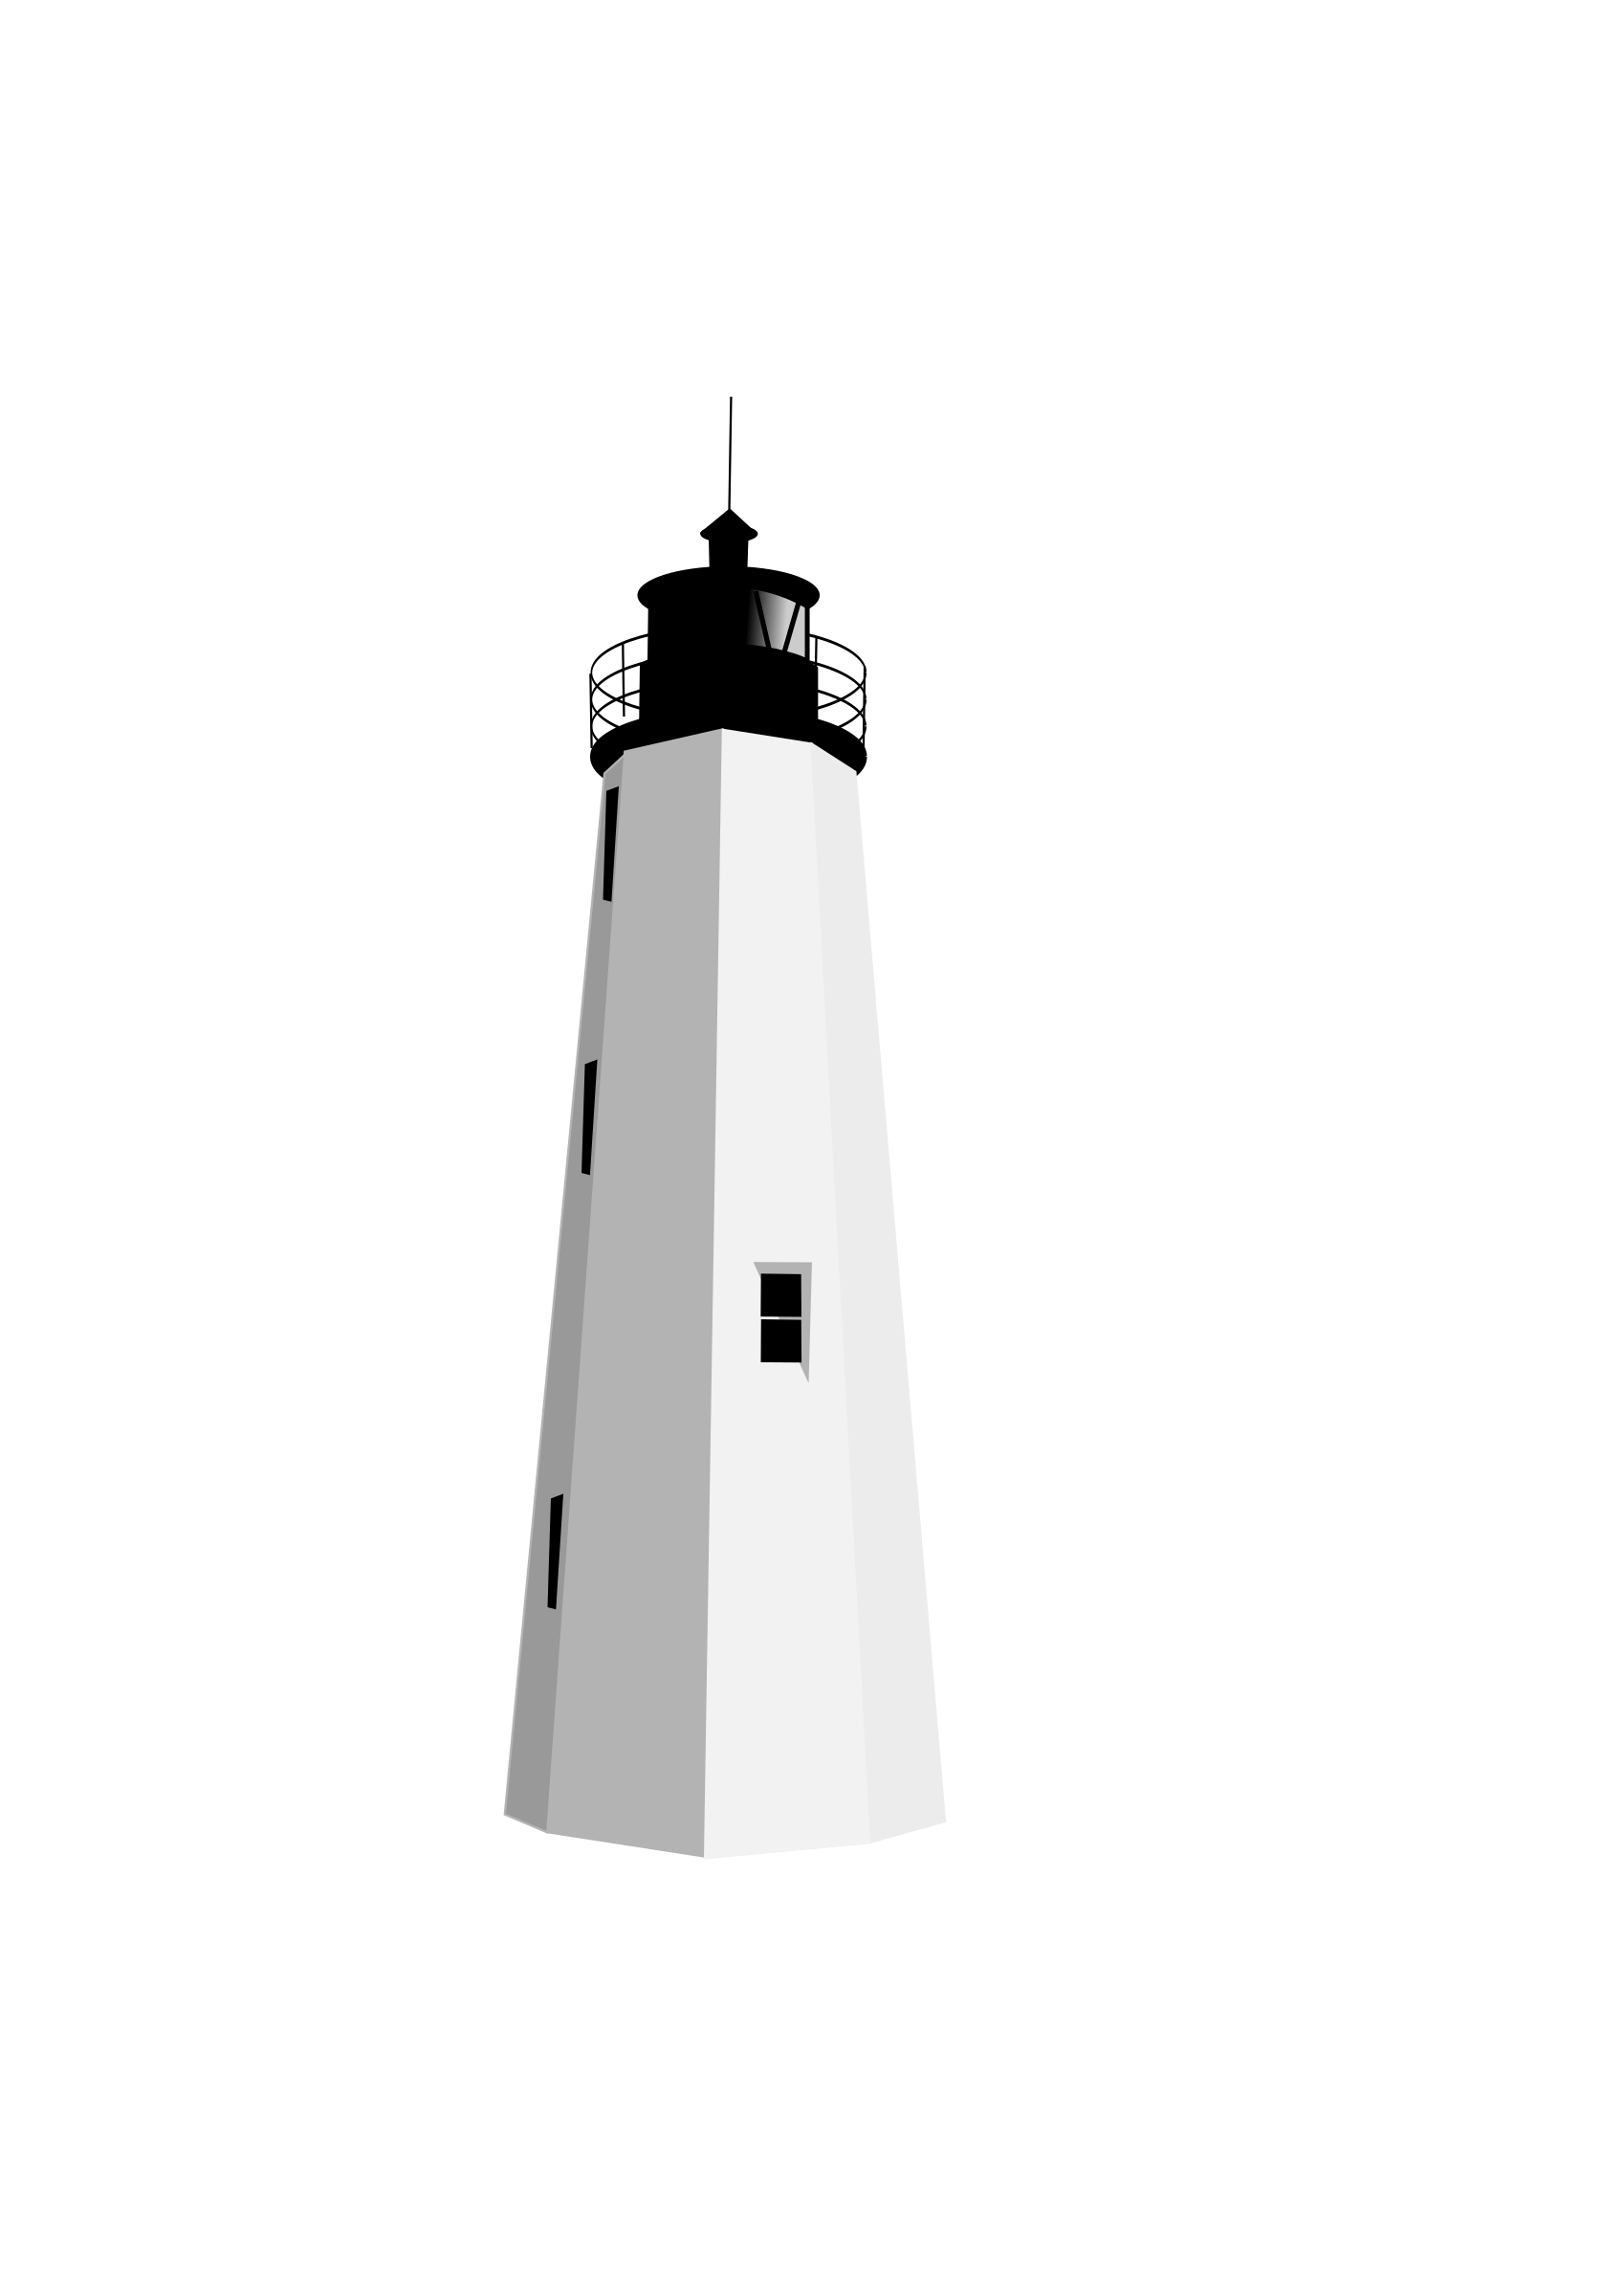 White lighthouse images clipart svg free download Black White Lighthouse Clipart transparent PNG - StickPNG svg free download